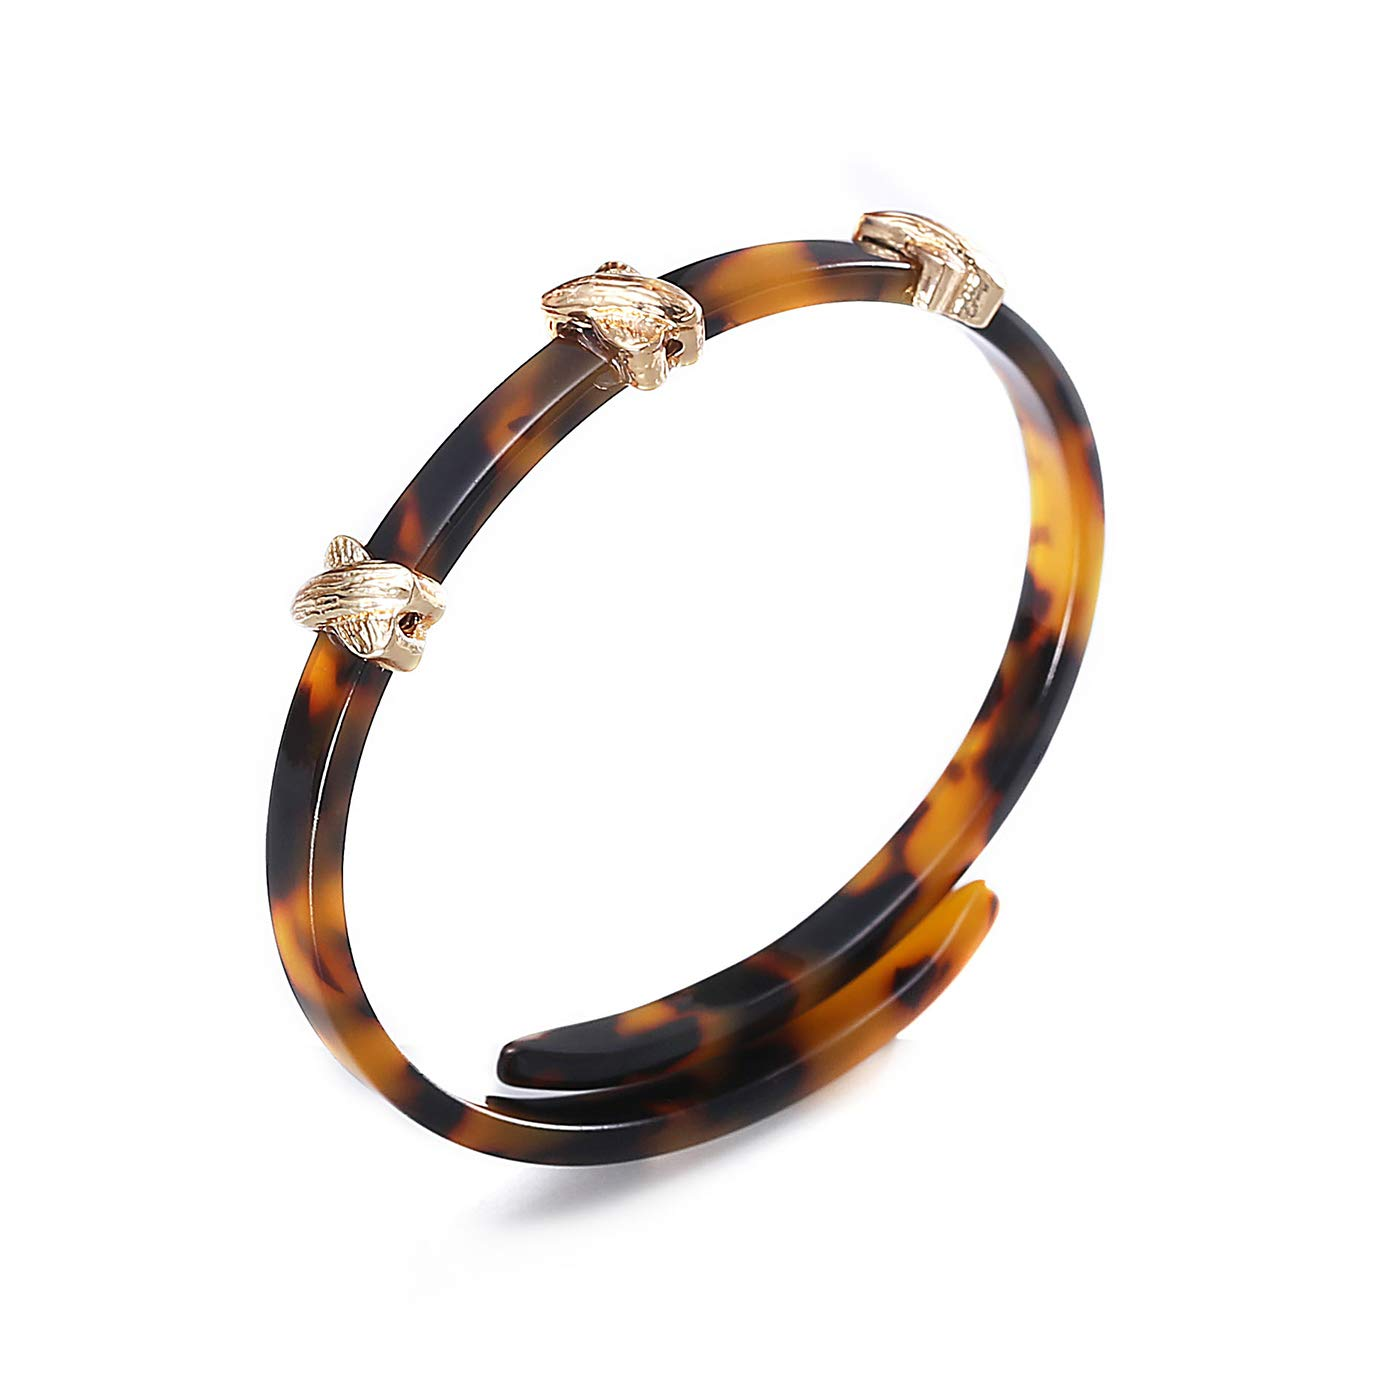 FAMARINE Acrylic Bangle Bracelet, Tortoise Shell Flexible Adjustable Bracelet with Gold Charm HHB-001